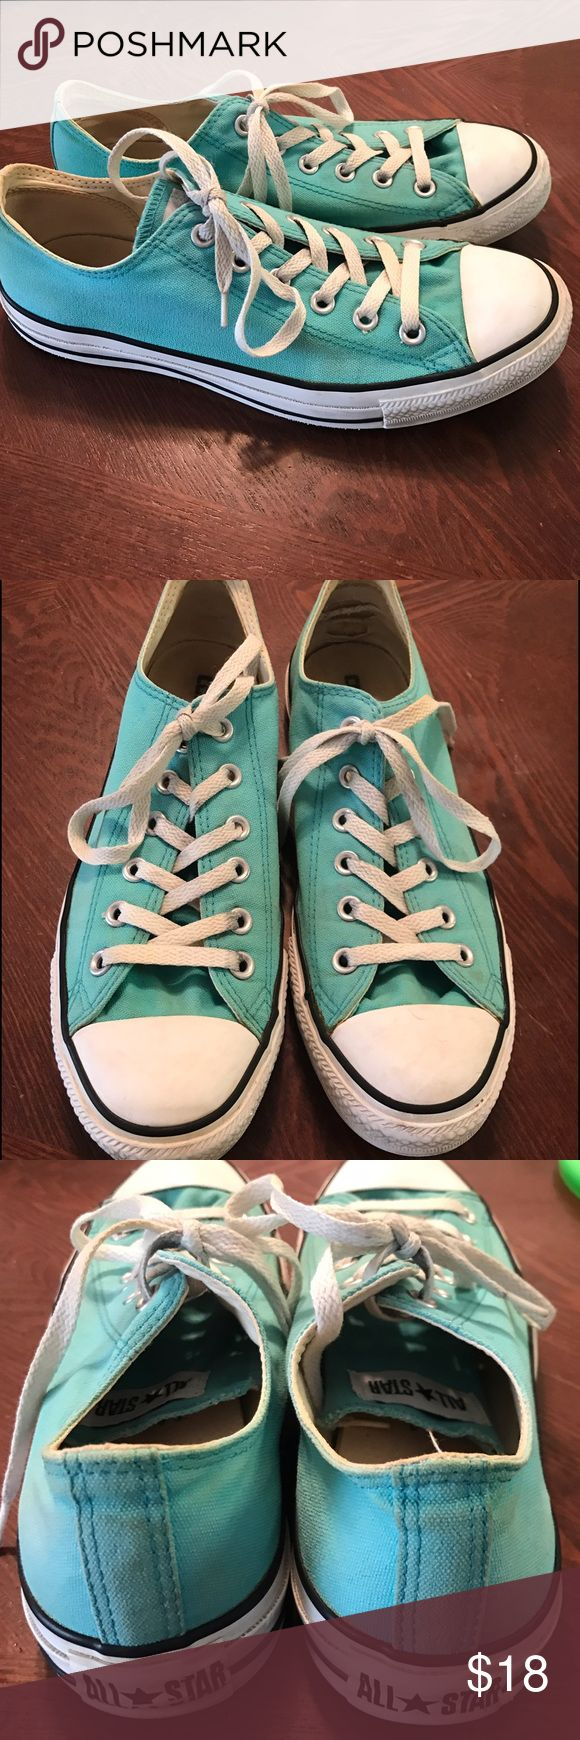 Teal Turquoise Converse Sneakers Womens 10, men's 8... some holes in the inside heels! Won't make a difference if you're wearing socks. Some spots and marks. Still very good condition! Converse Shoes Sneakers